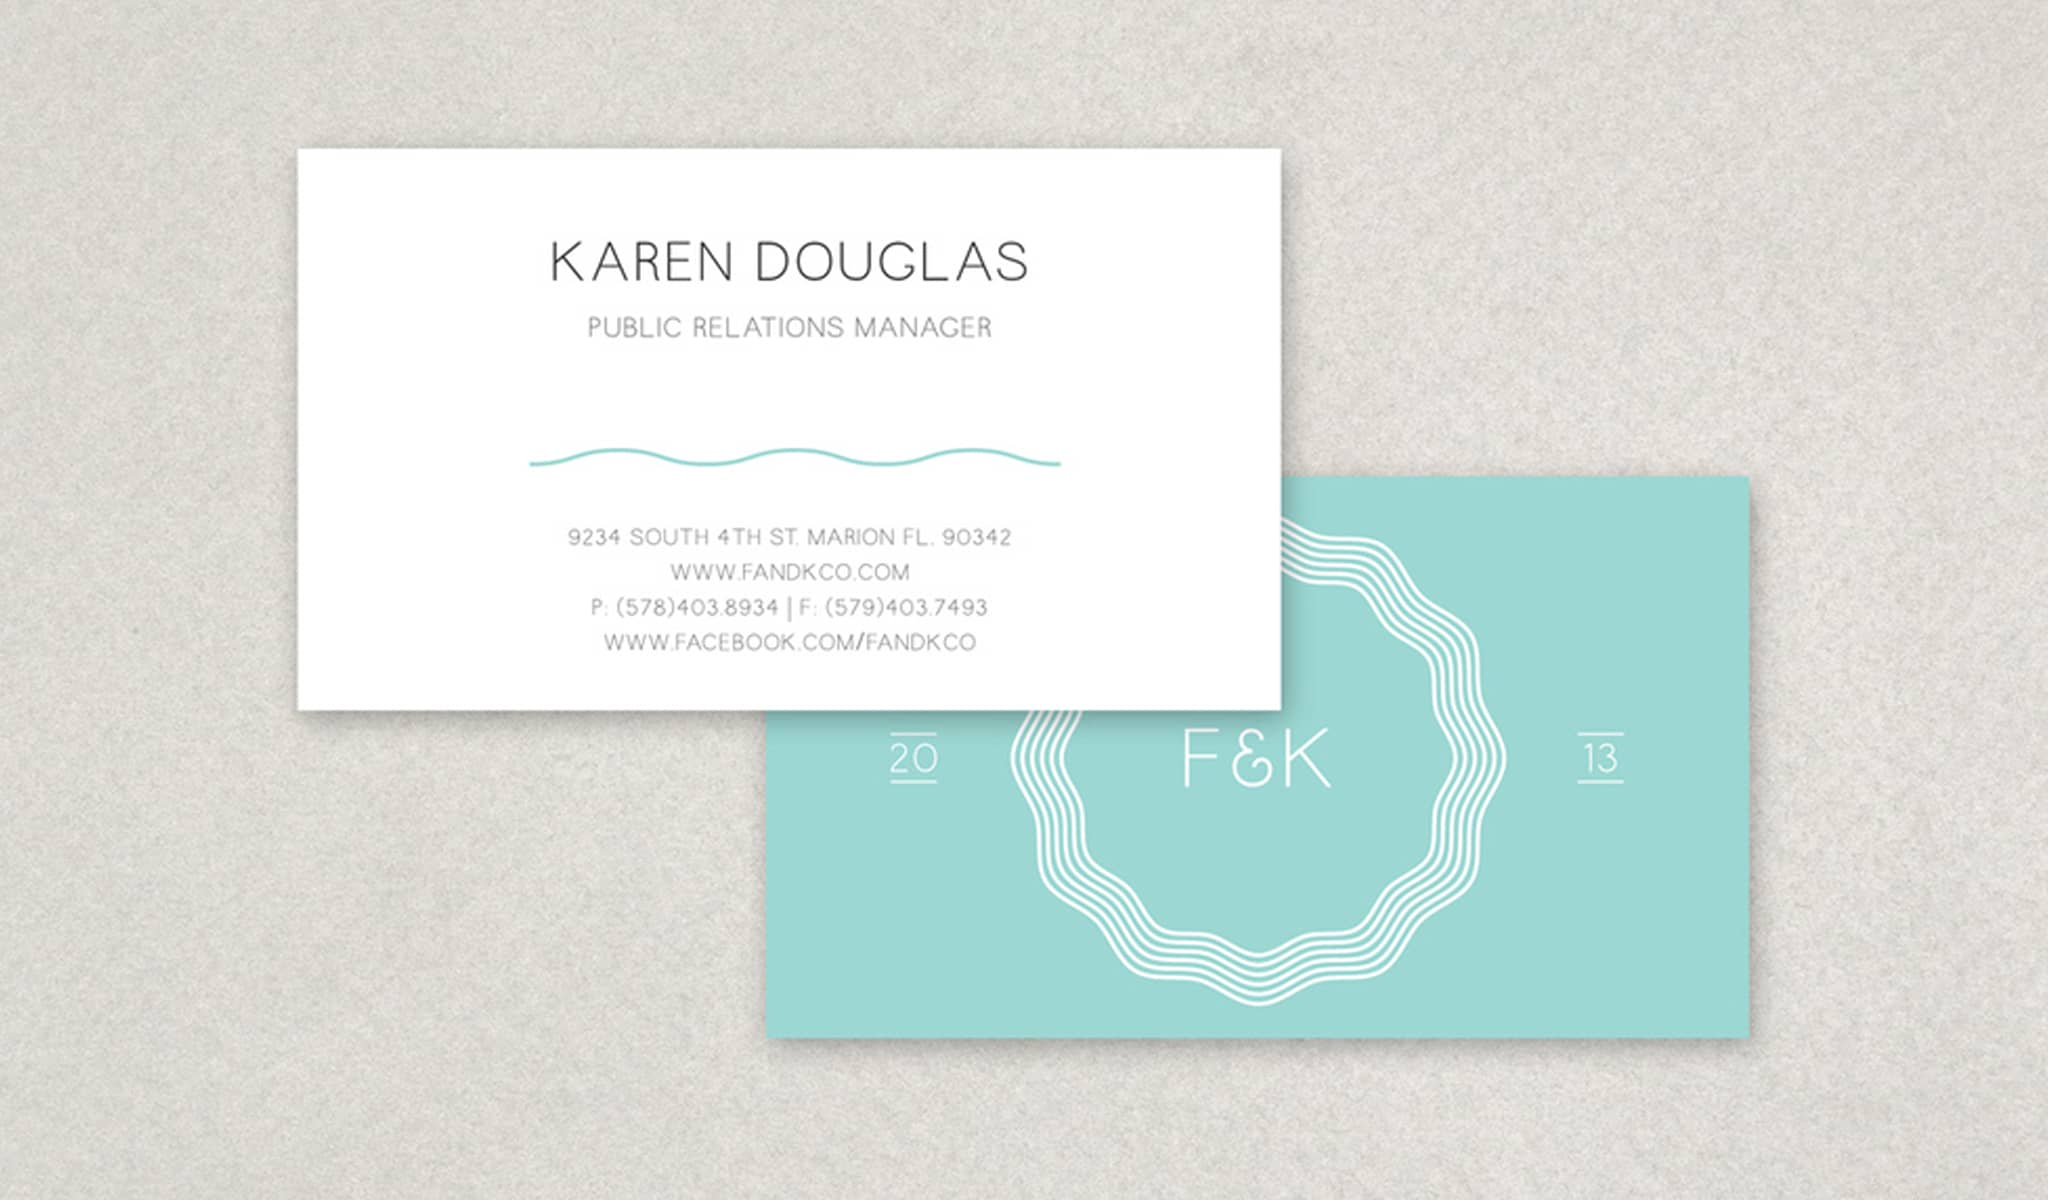 Soft Blue And White Simplicity Business Card Template